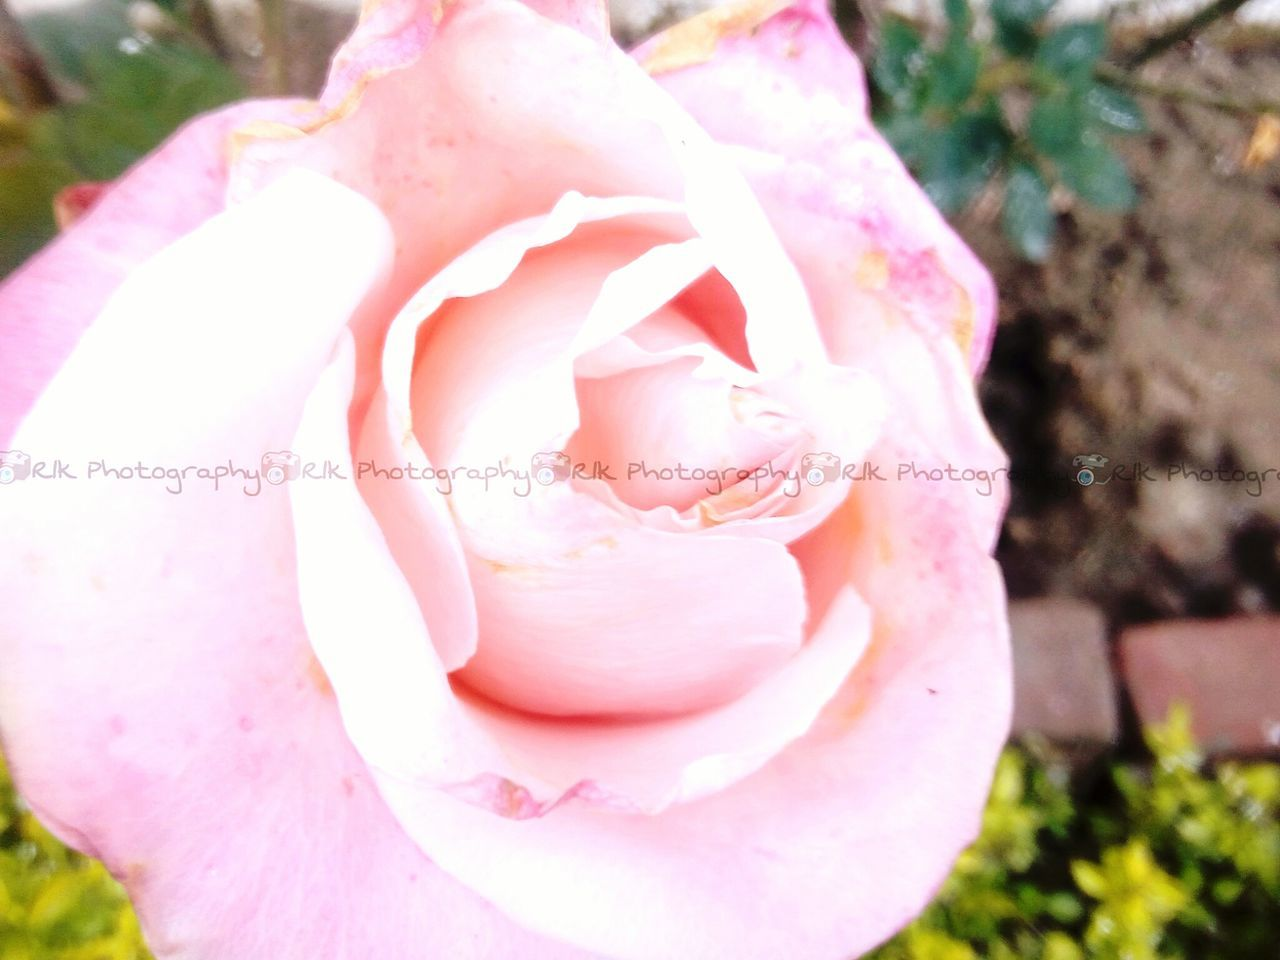 Pinkbeauty January2016 Pink Rose Followfor More to R1kphotography Macro Beauty loading soon Followforfollow Followme I Follow You give and take is basics for me